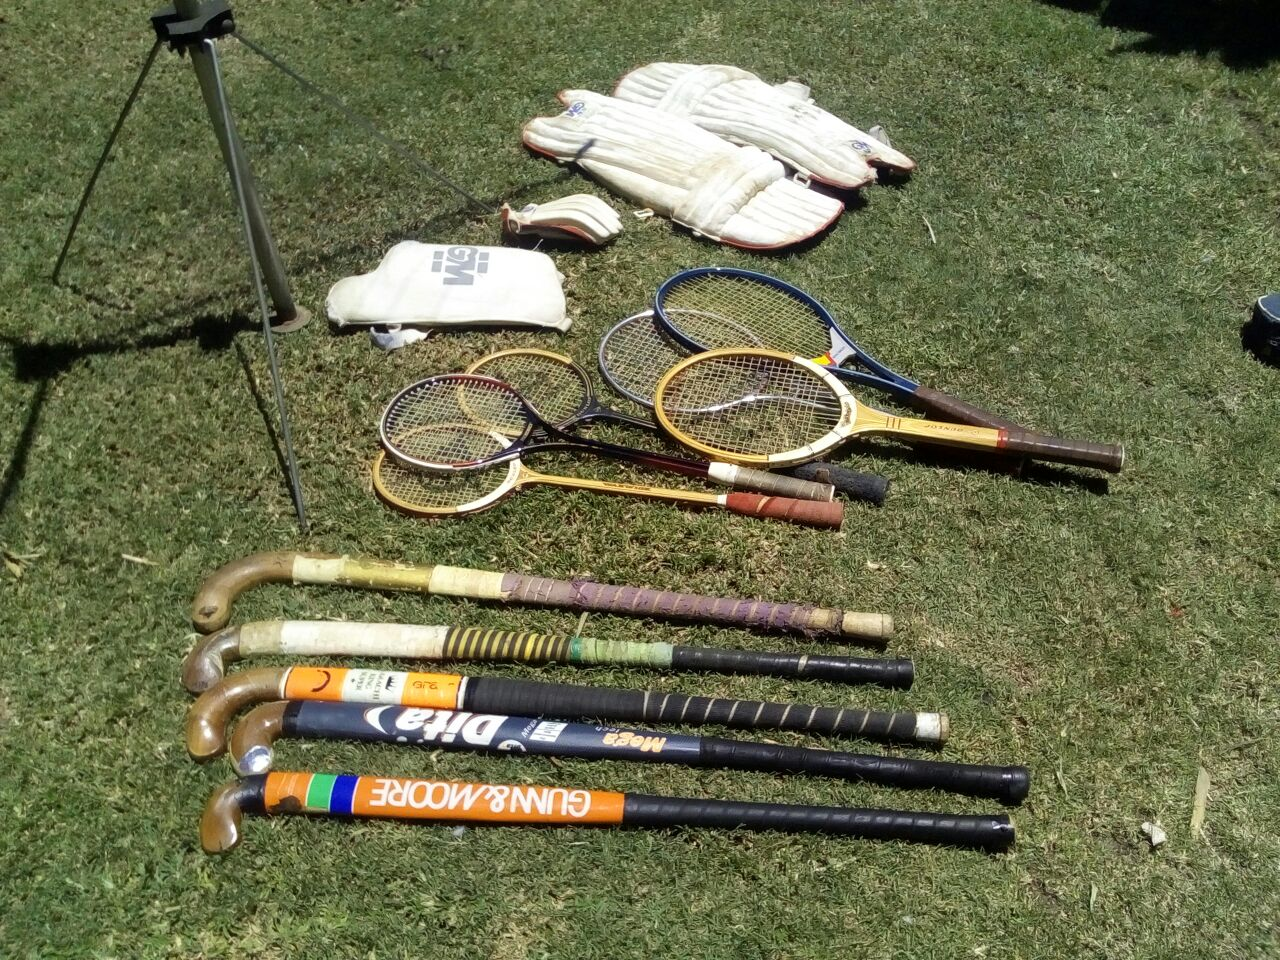 Tennis rackets, Squash rackets and knee pads